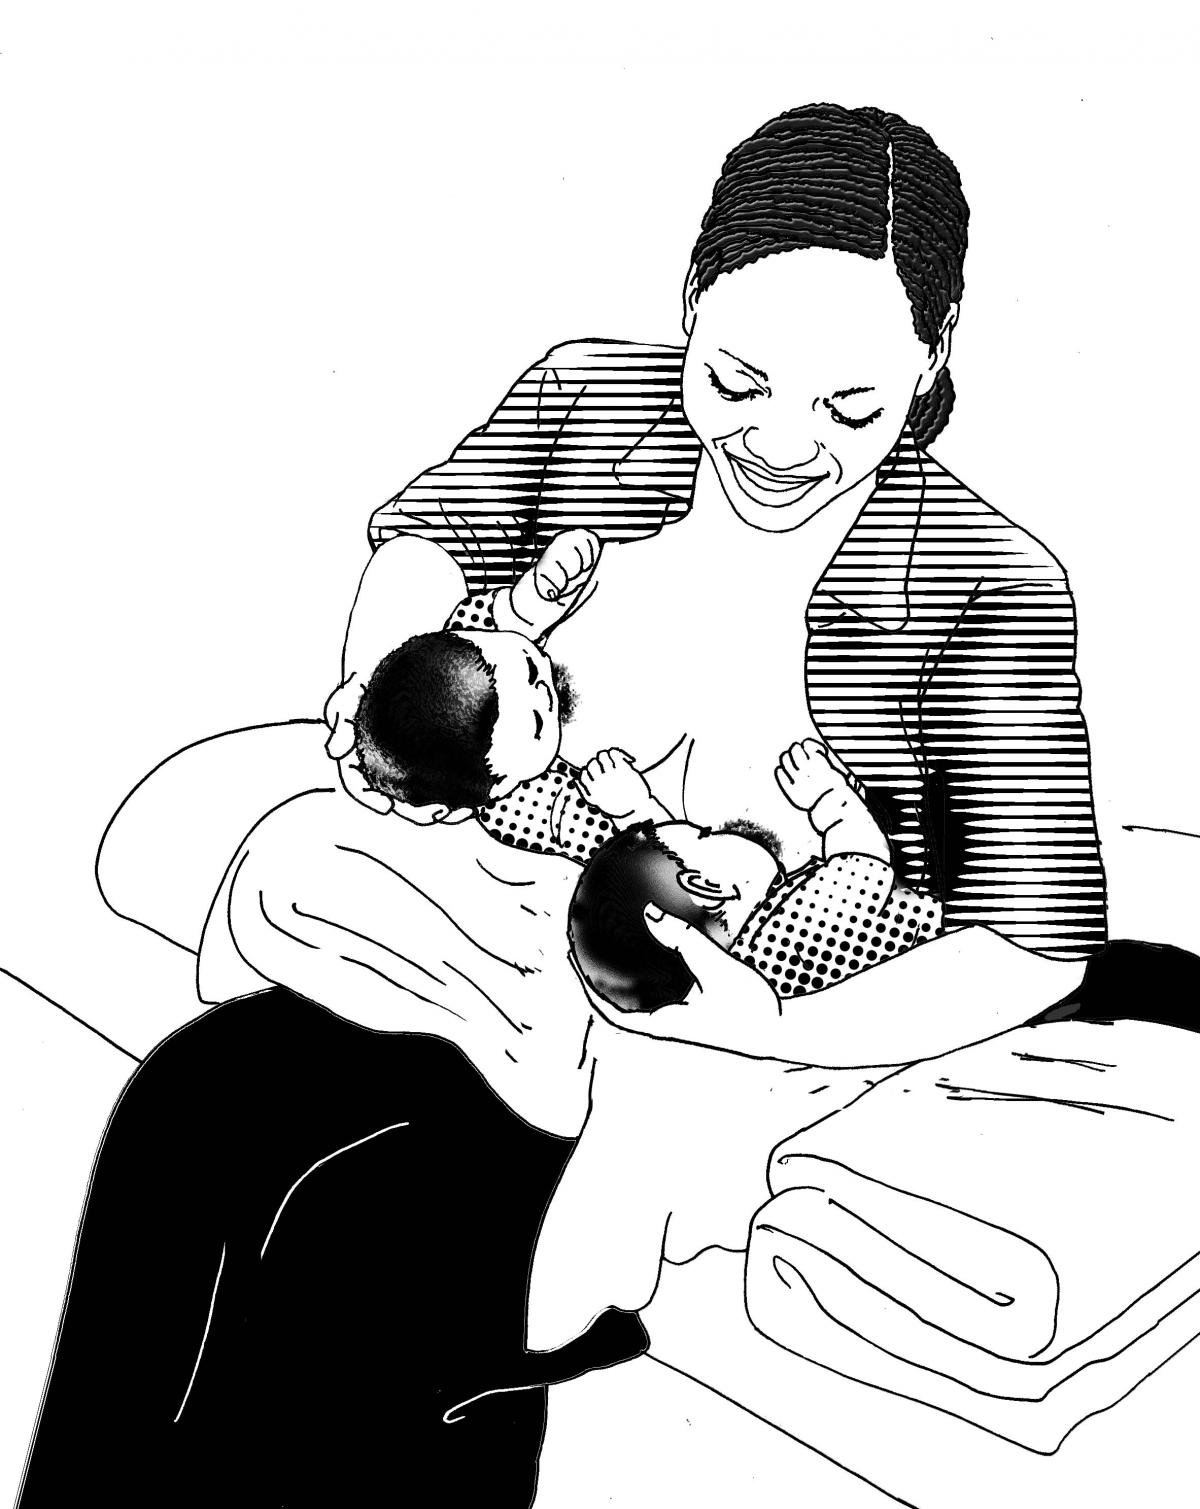 Breastfeeding - Breastfeeding positions 6-9 mo - 03 - Non-country specific